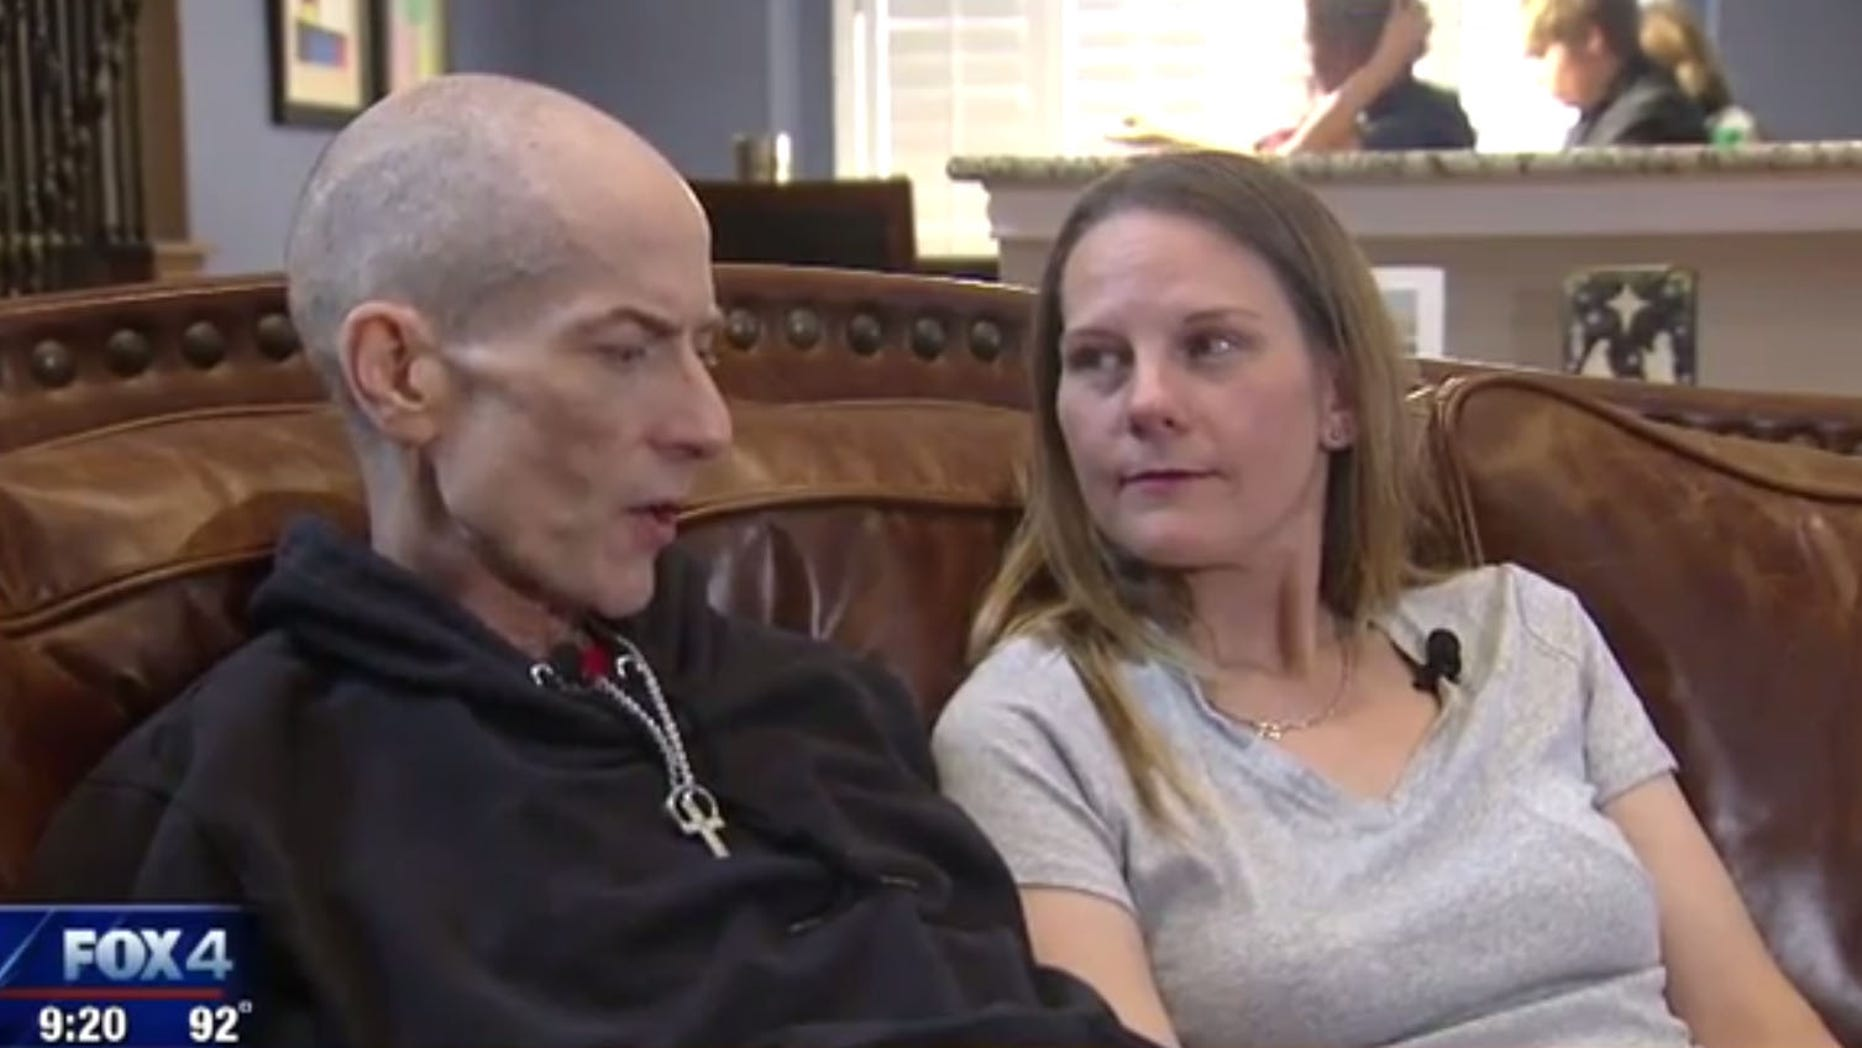 David Odum was diagnosed with terminal cancer in April.